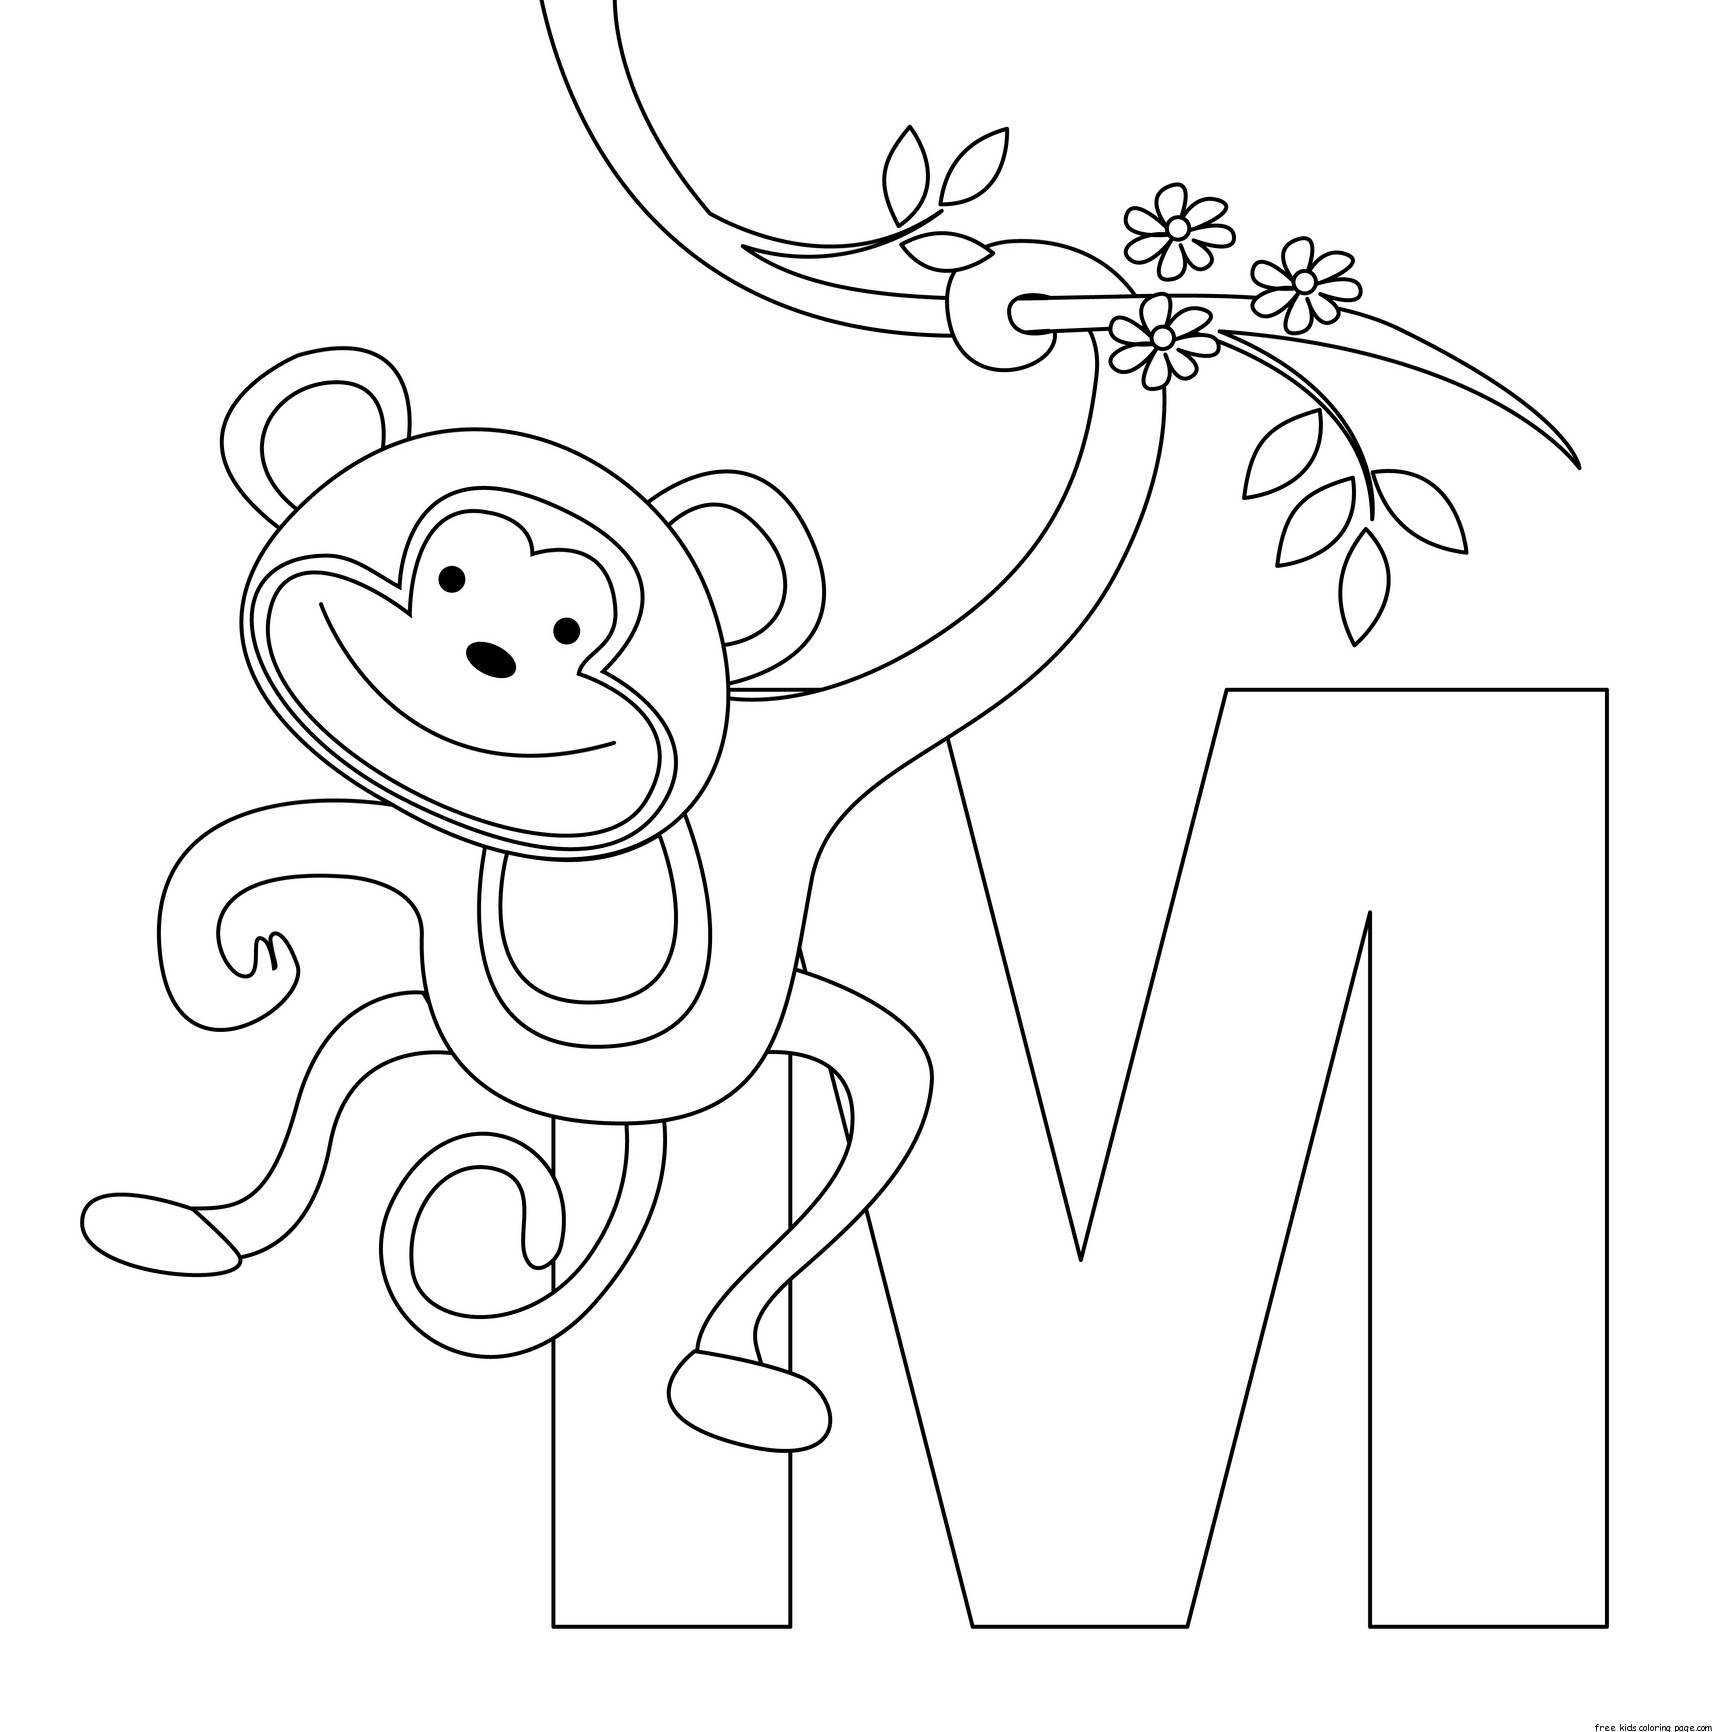 printable alphabet coloring pages animals | Printable animal alphabet letters m coloring pagesFree ...